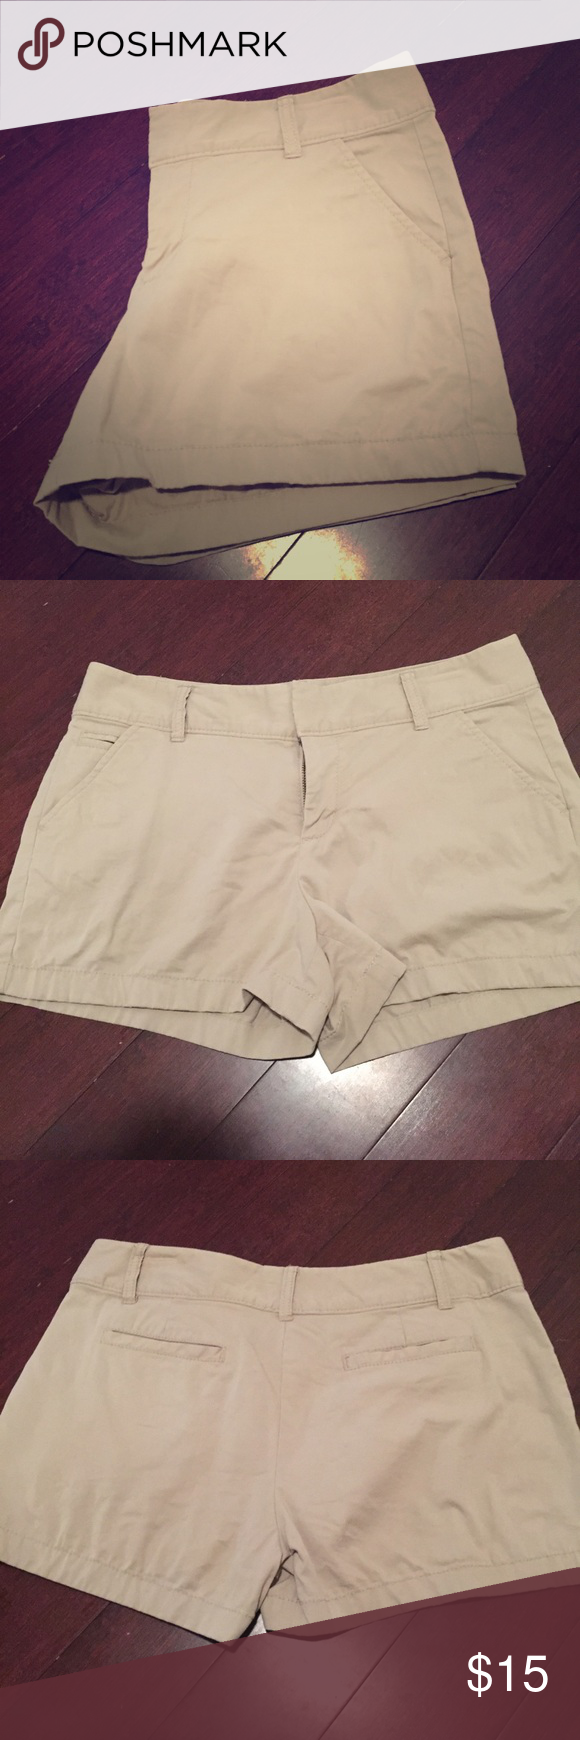 """Caslon shorts Tan Oxford Caslon shorts, zip fly with hook and bar closure, front slant pockets and back welt pockets, 97% cotton and 3 % spandex, wide top stitched hems, 9"""" front rise, 11"""" back rise, 10"""" leg opening, 17"""" waist, purchased at Nordstroms. Caslon Shorts"""